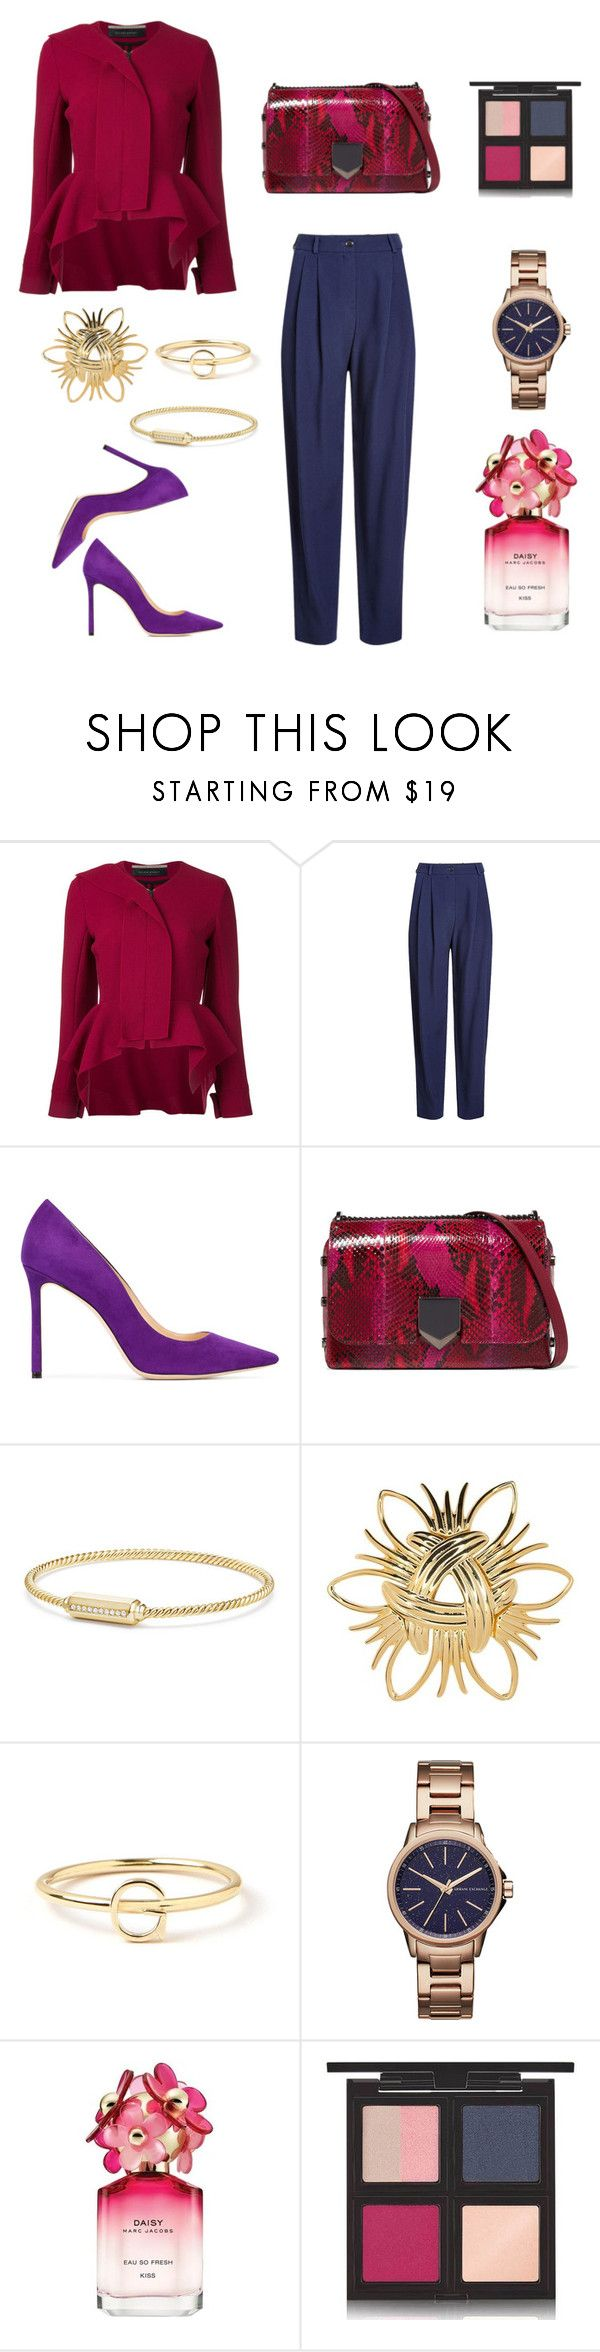 """""""Untitled #797"""" by mary-en ❤ liked on Polyvore featuring Roland Mouret, HUGO, Jimmy Choo, David Yurman, Kenneth Jay Lane, Maya Brenner Designs, Armani Exchange, Marc Jacobs, The Body Shop and ladylike"""